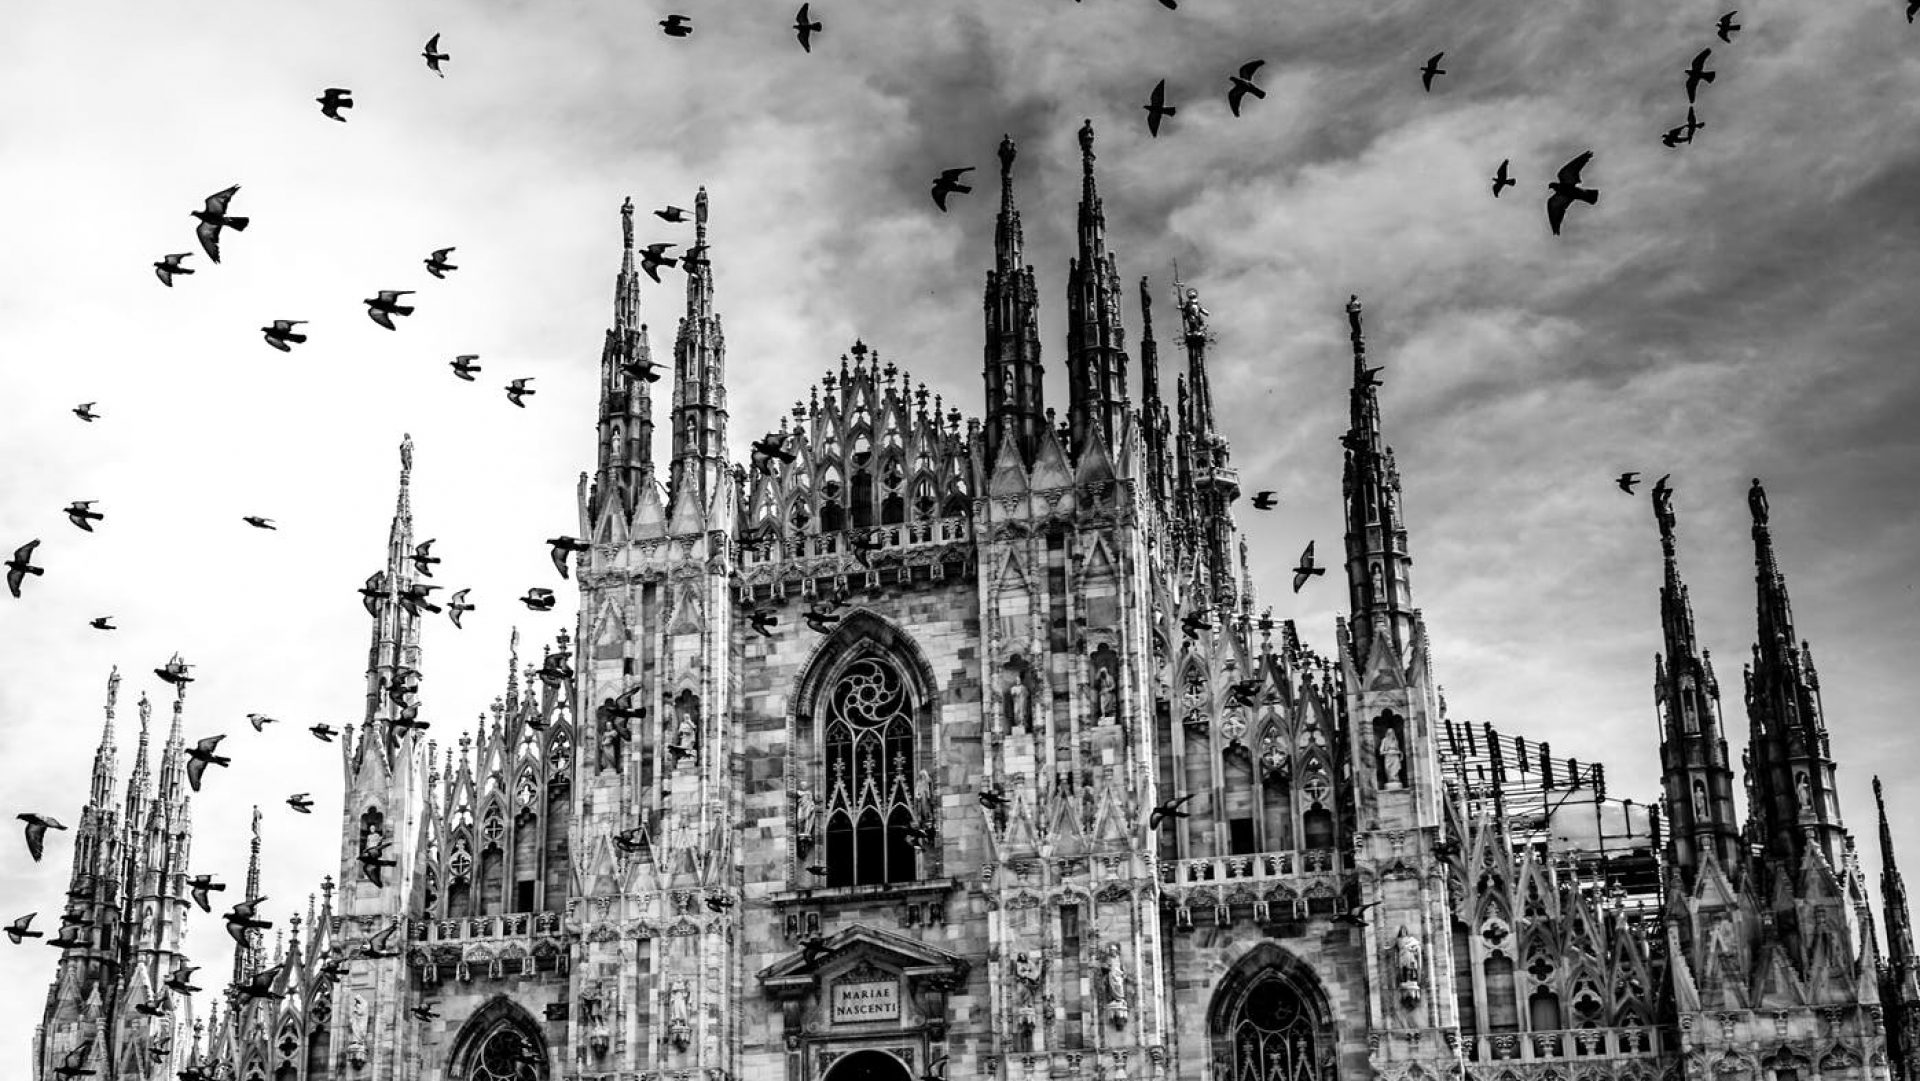 Milan in the time of Coronavirus